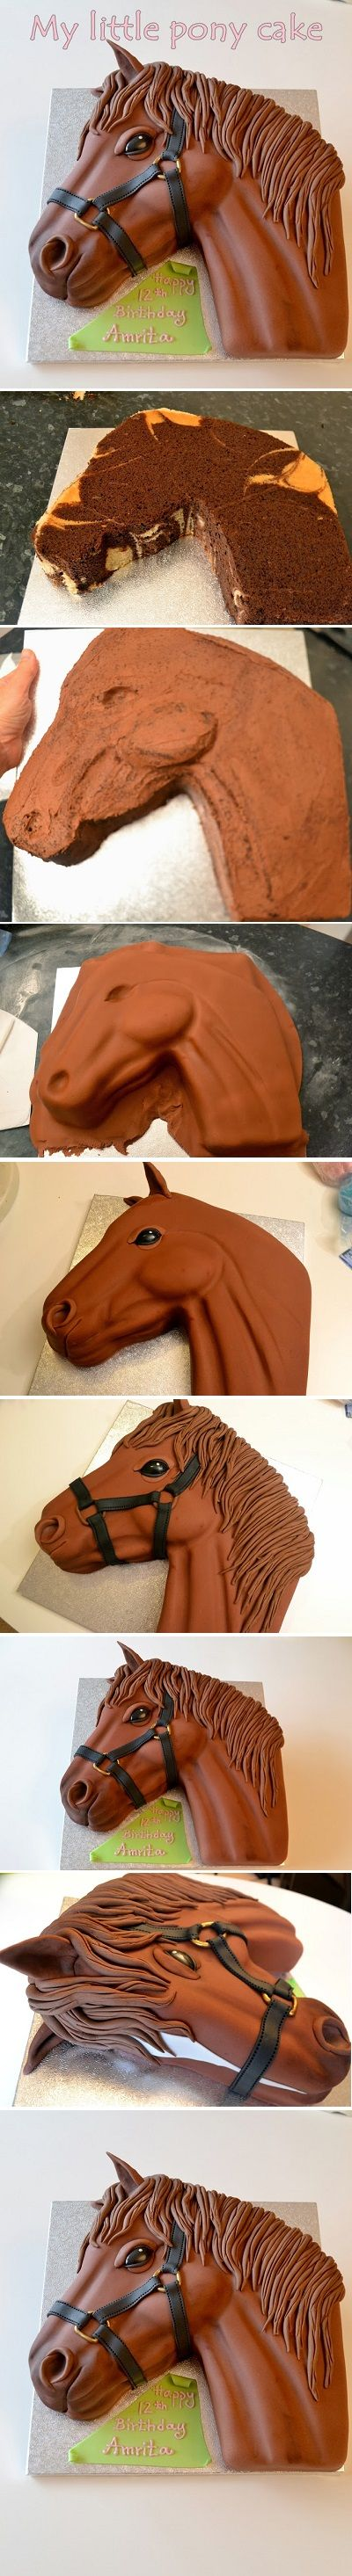 Horse head shaped cake - with photo instructions